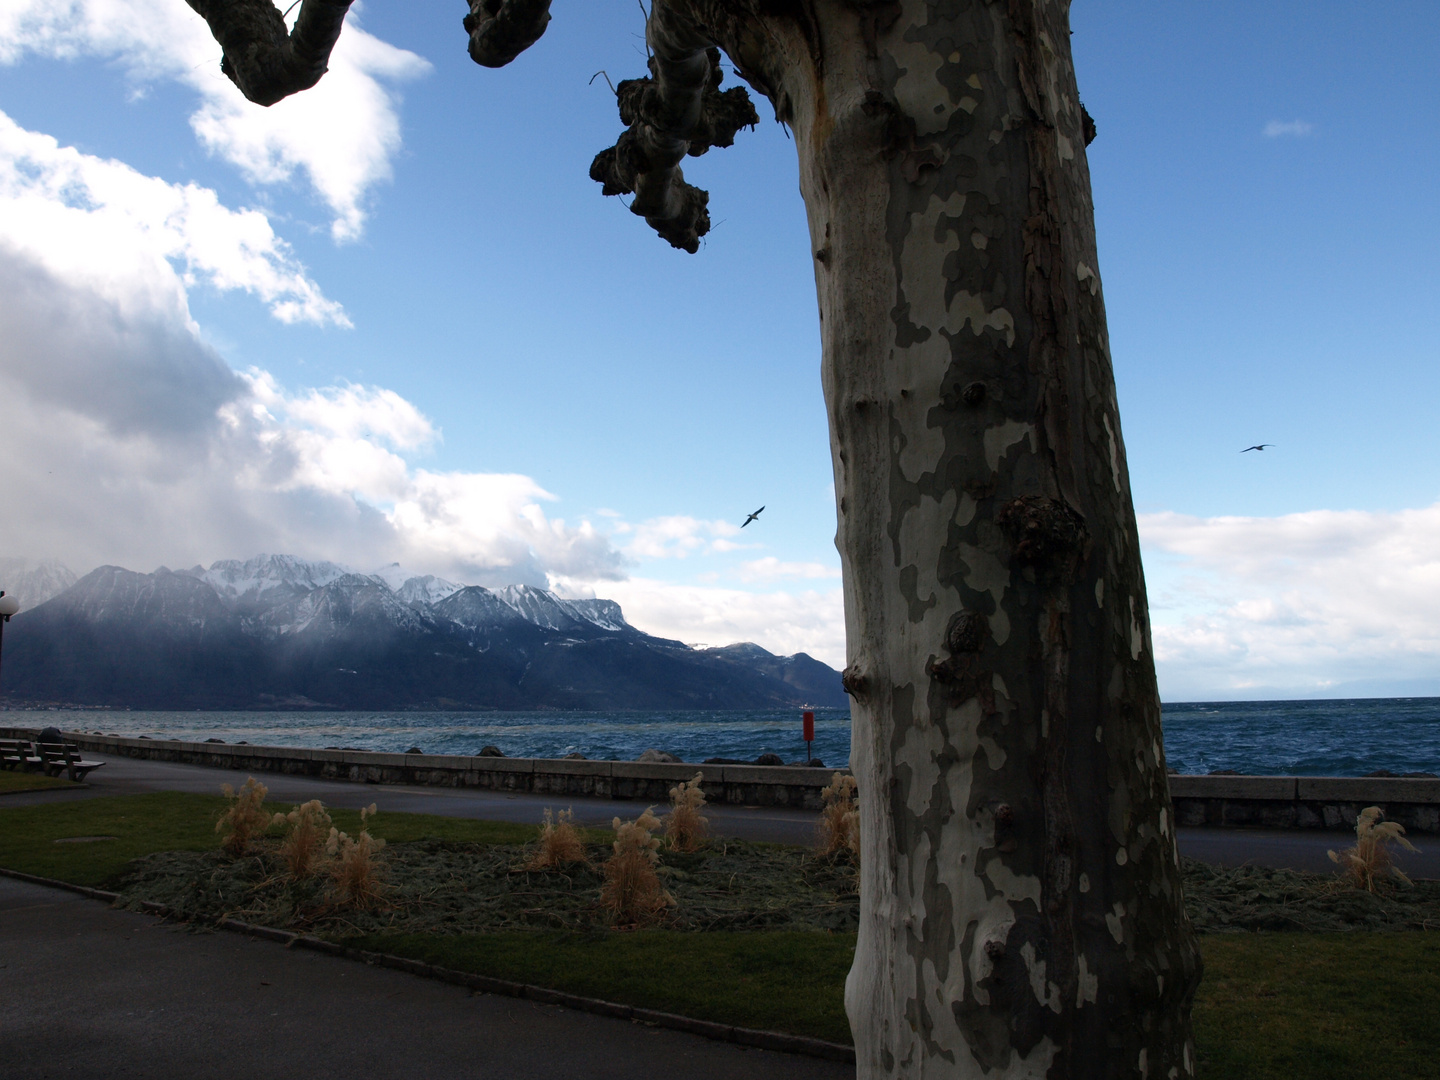 Vevey am Genfer See